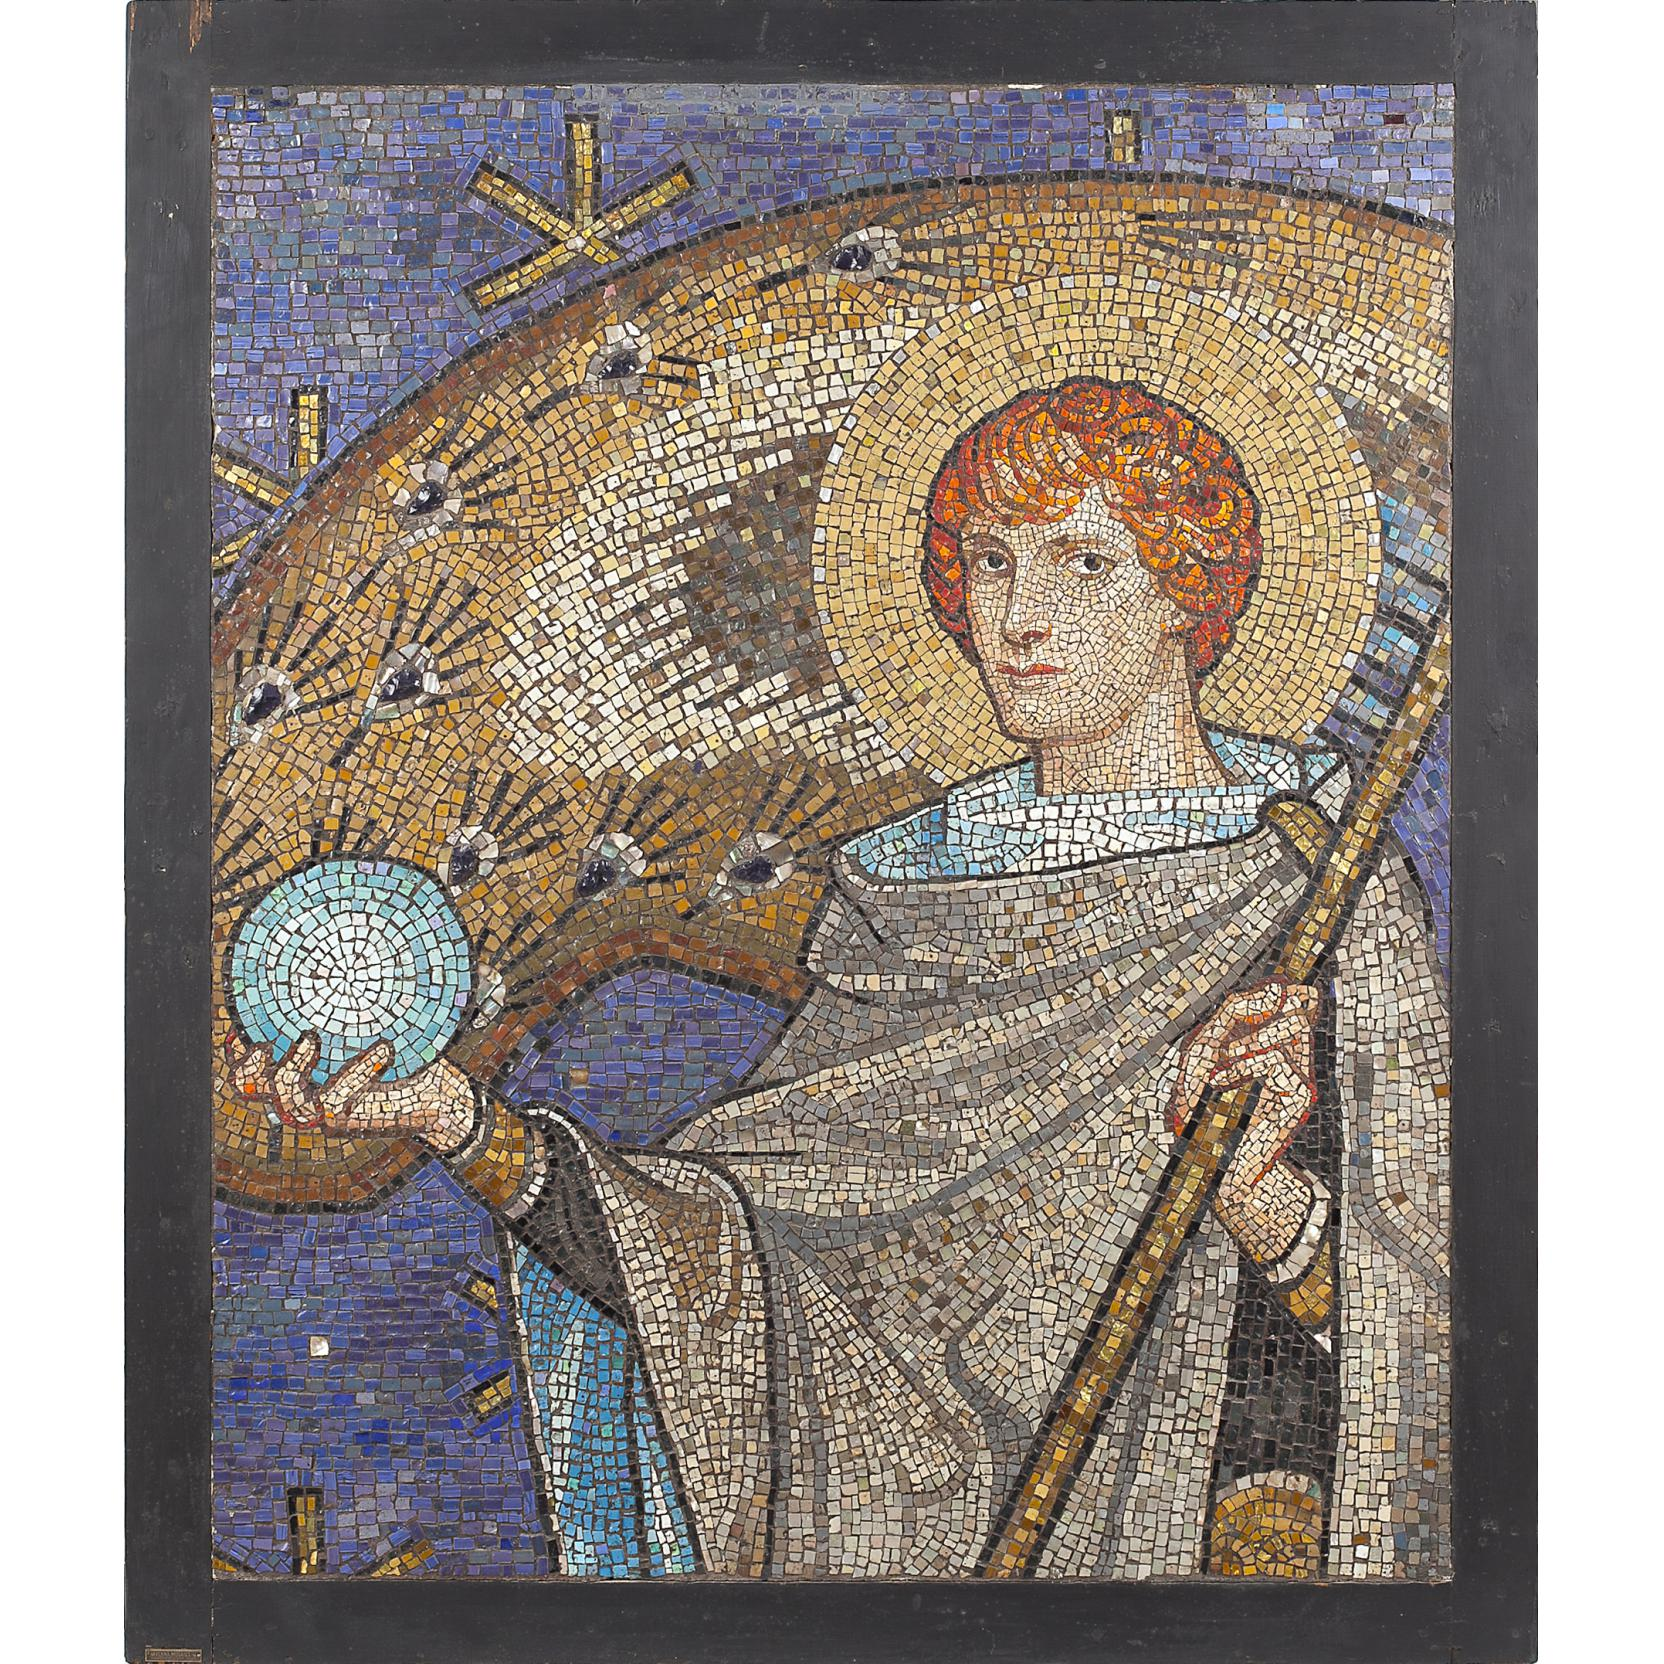 ravenna-mosaic-co-angel-with-staff-orb